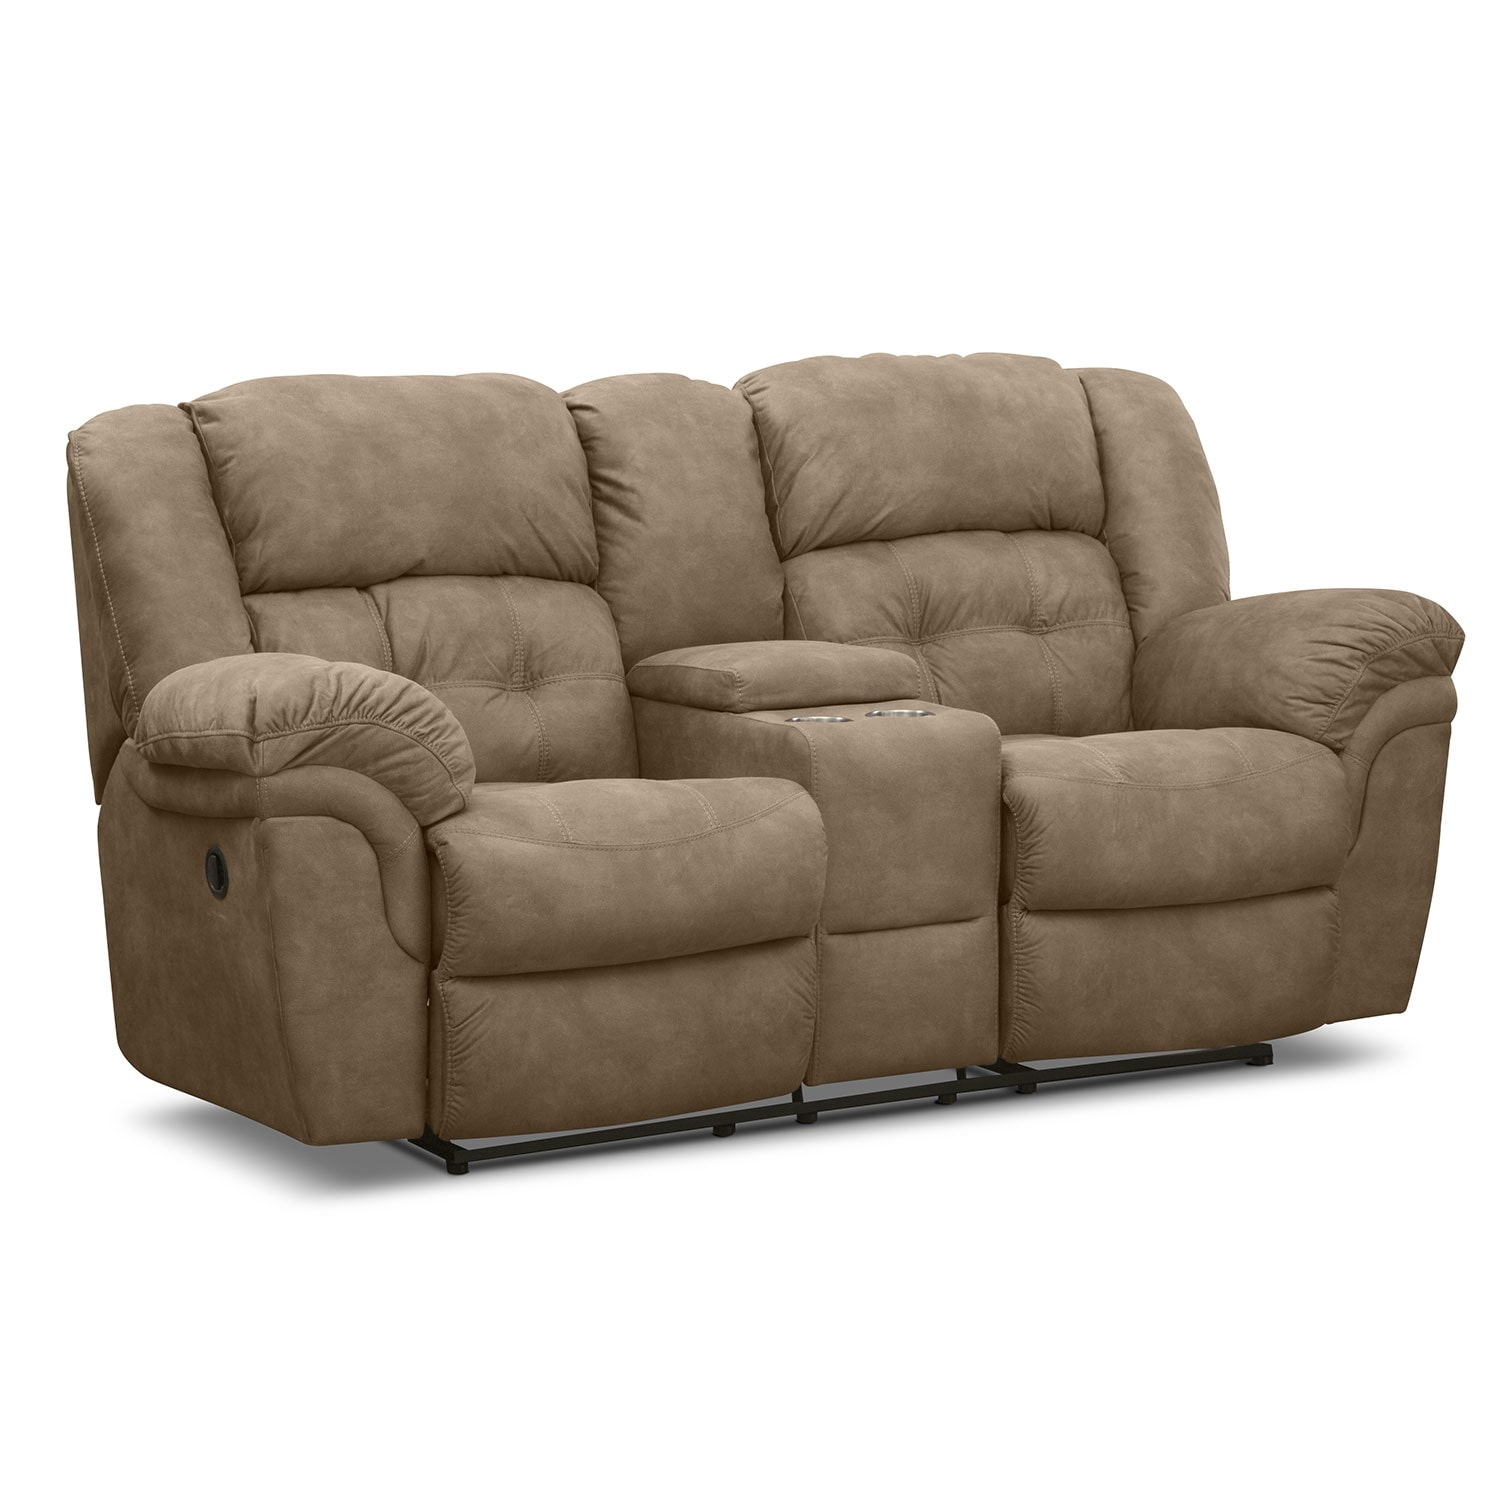 Lancer pecan upholstery reclining loveseat with console value city furniture Loveseats that recline